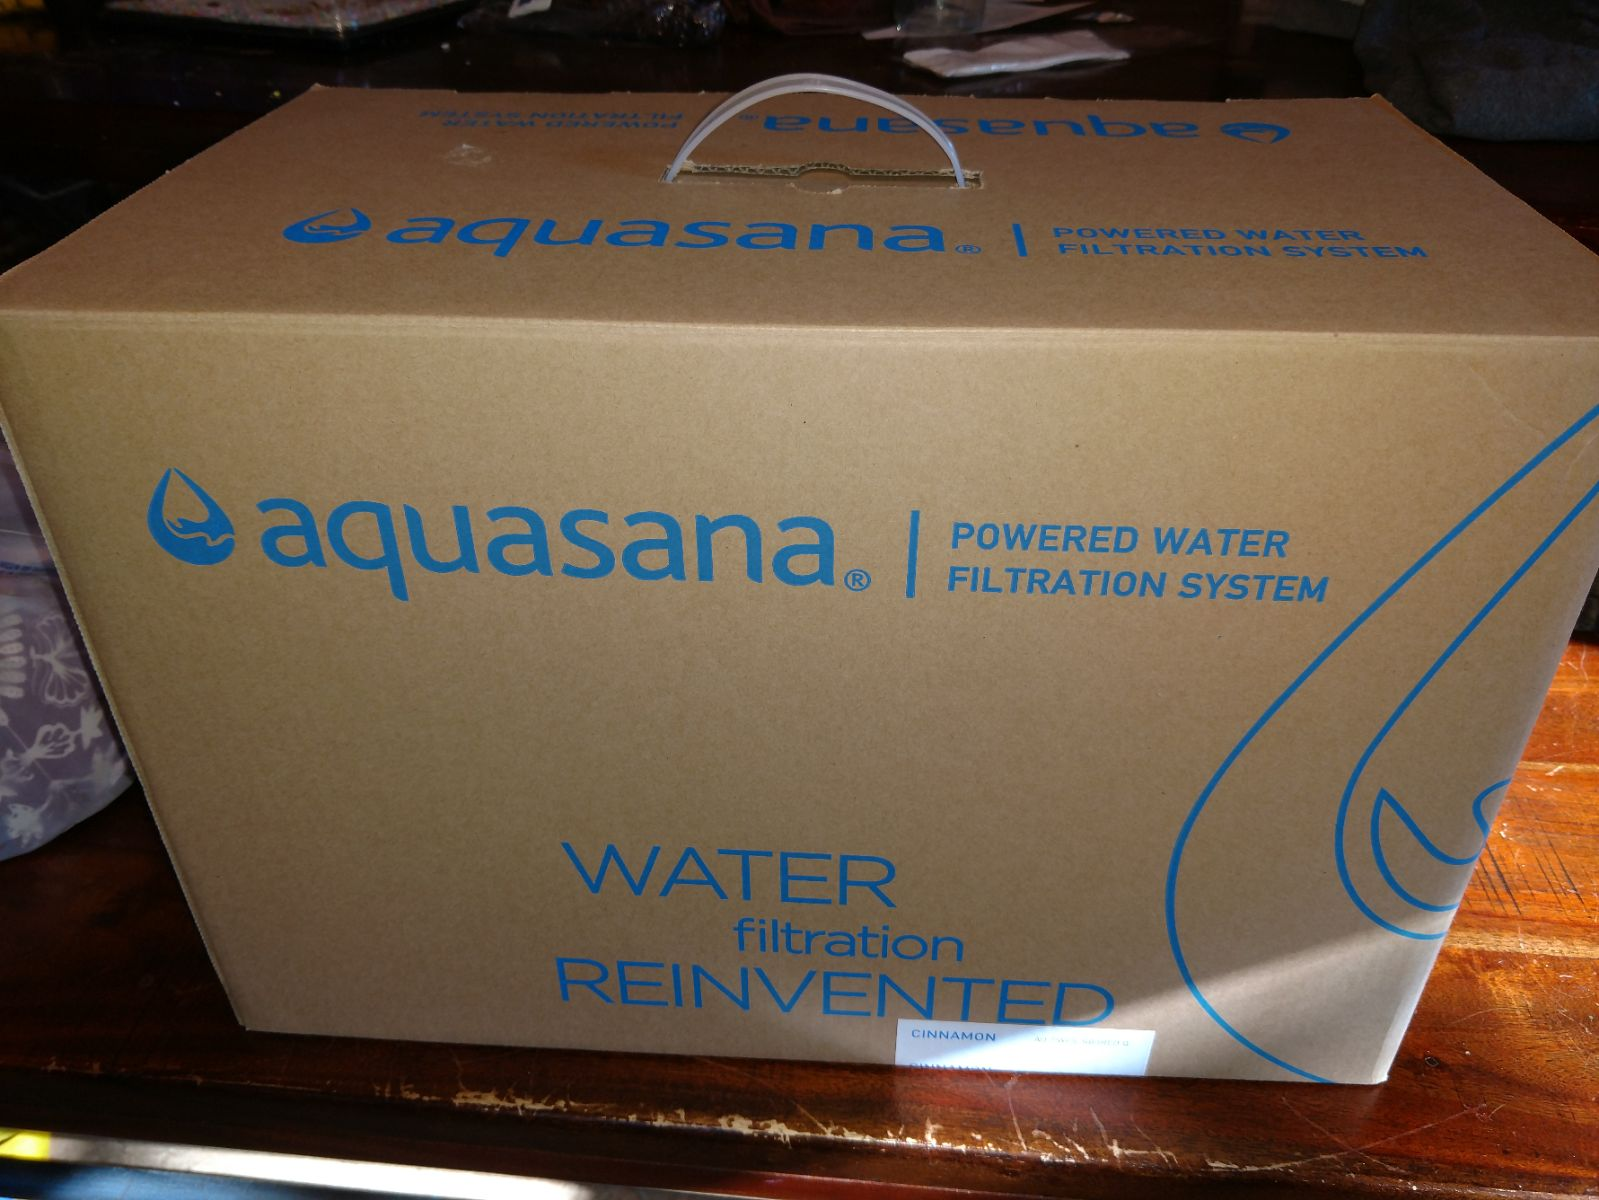 Aquasana Powered Water Filtration System